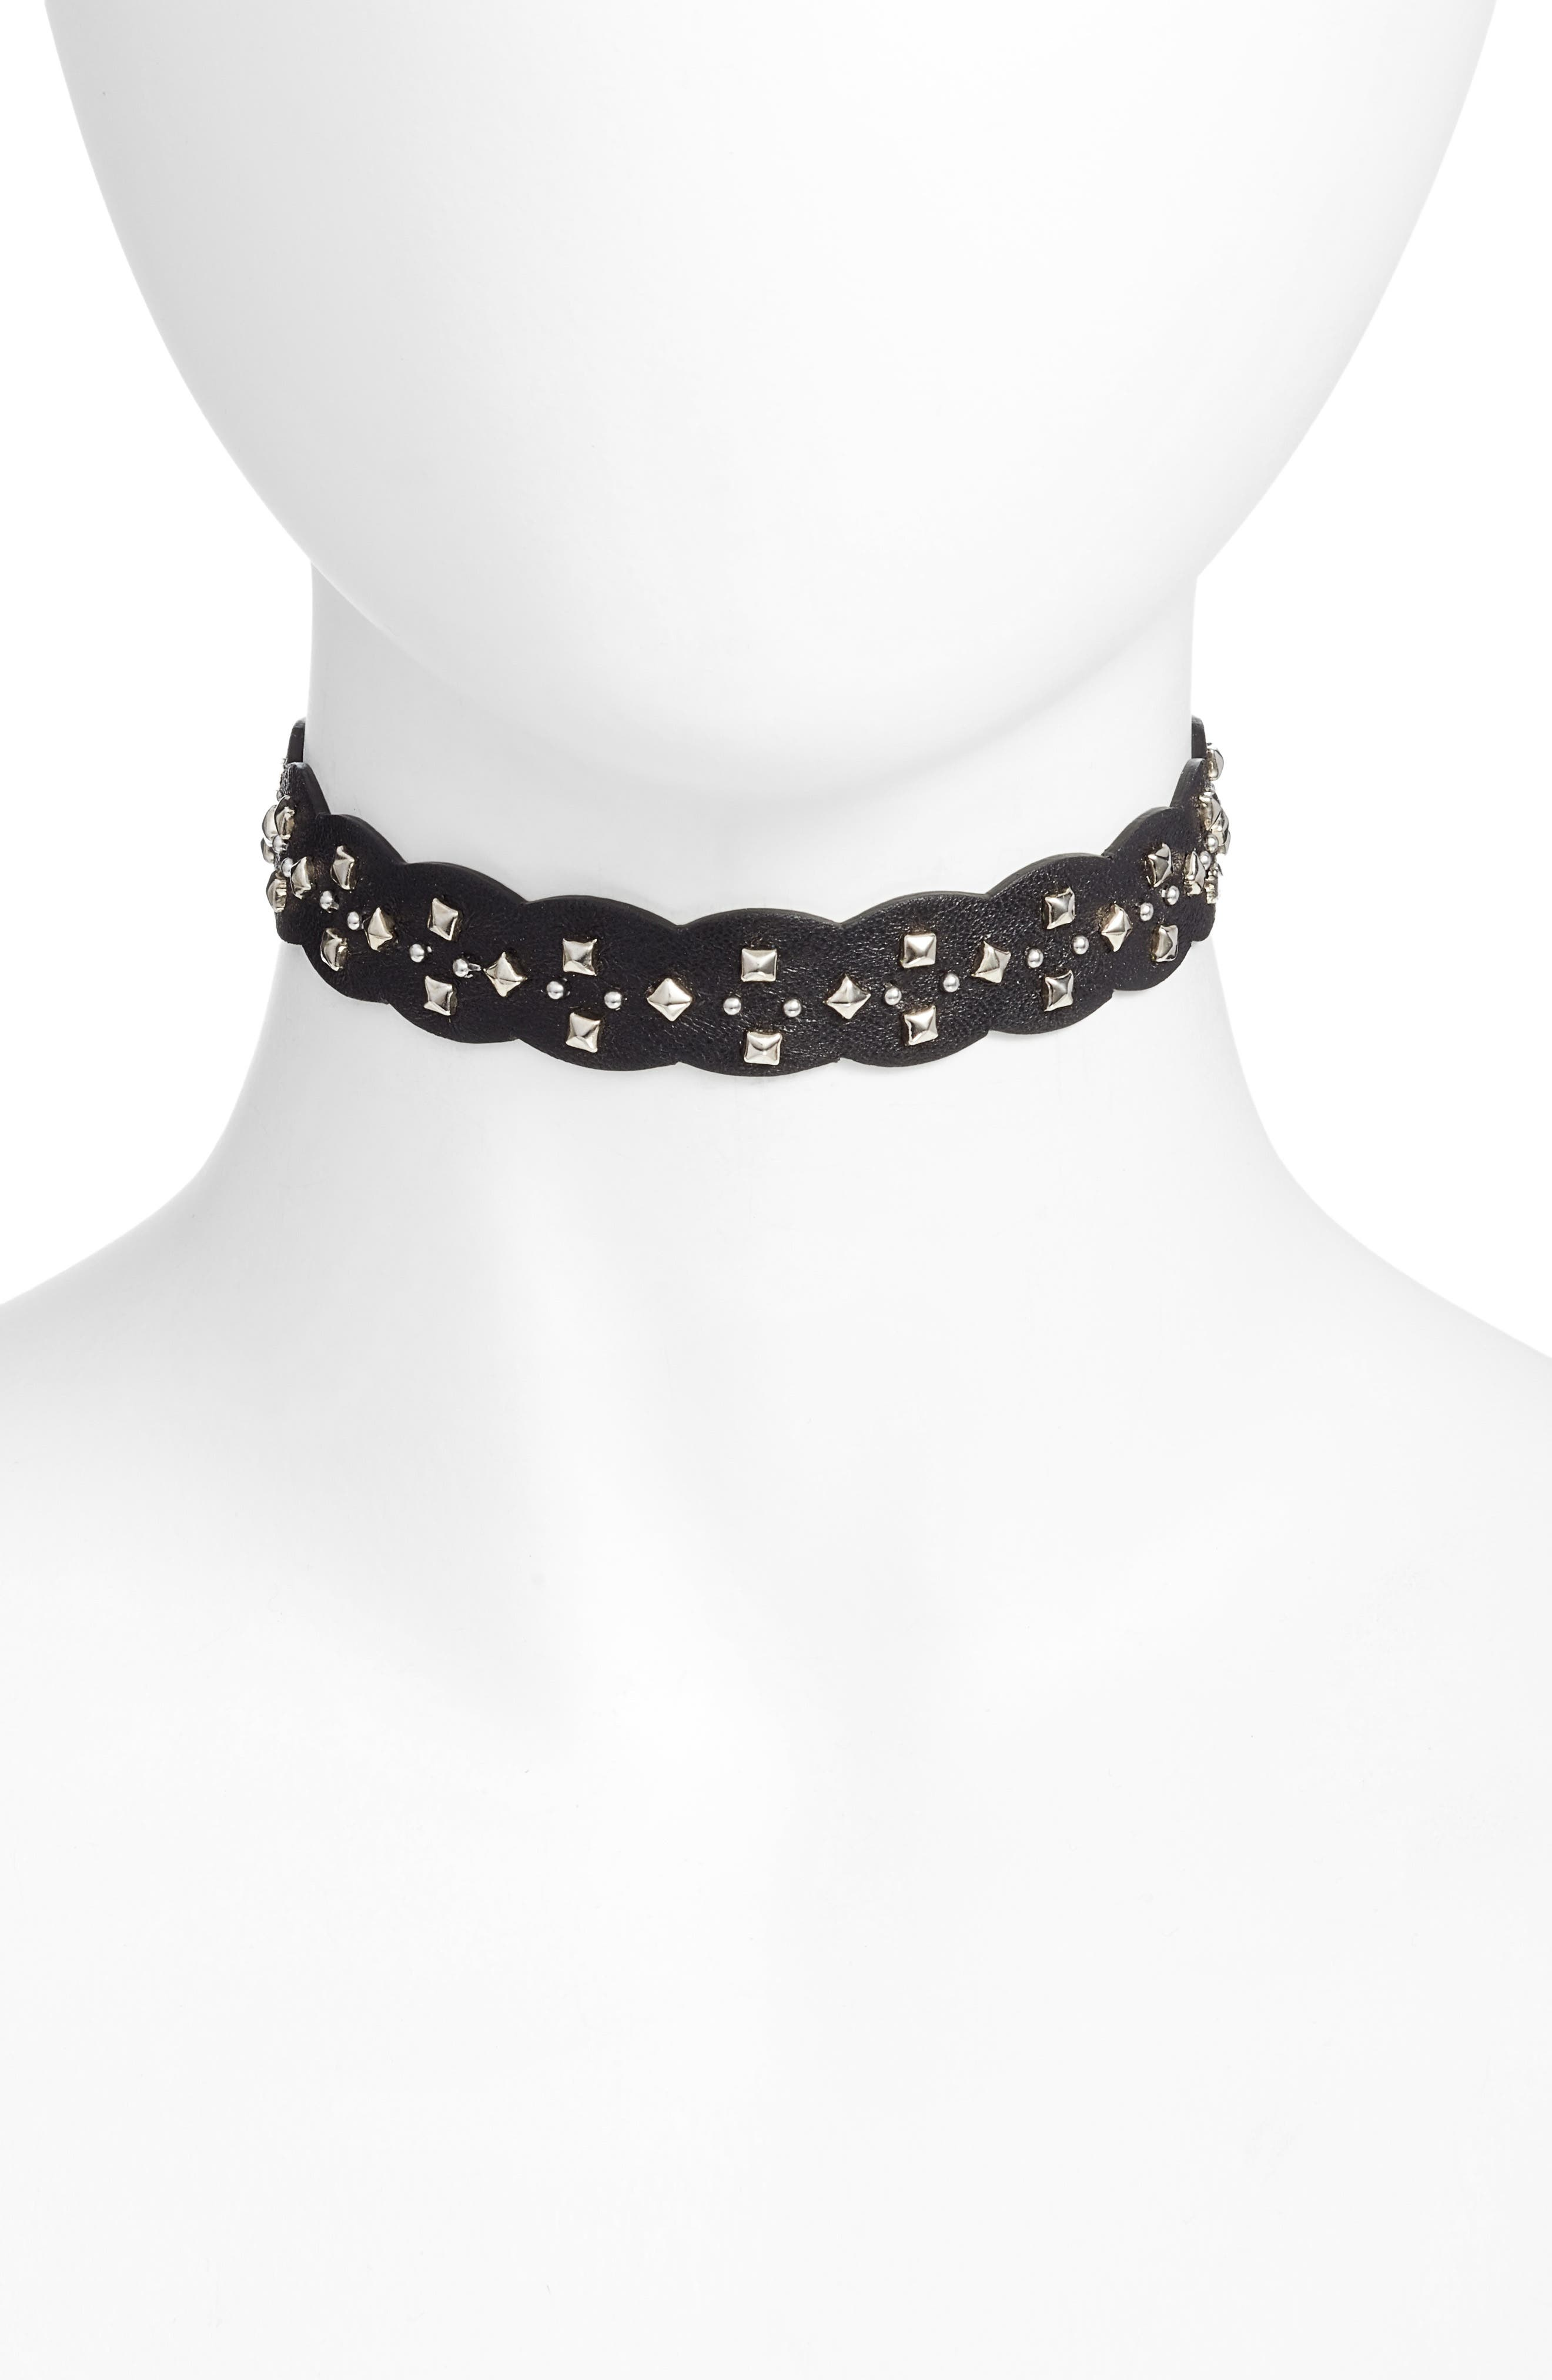 Alternate Image 1 Selected - Rebecca Minkoff Leather Choker Necklace